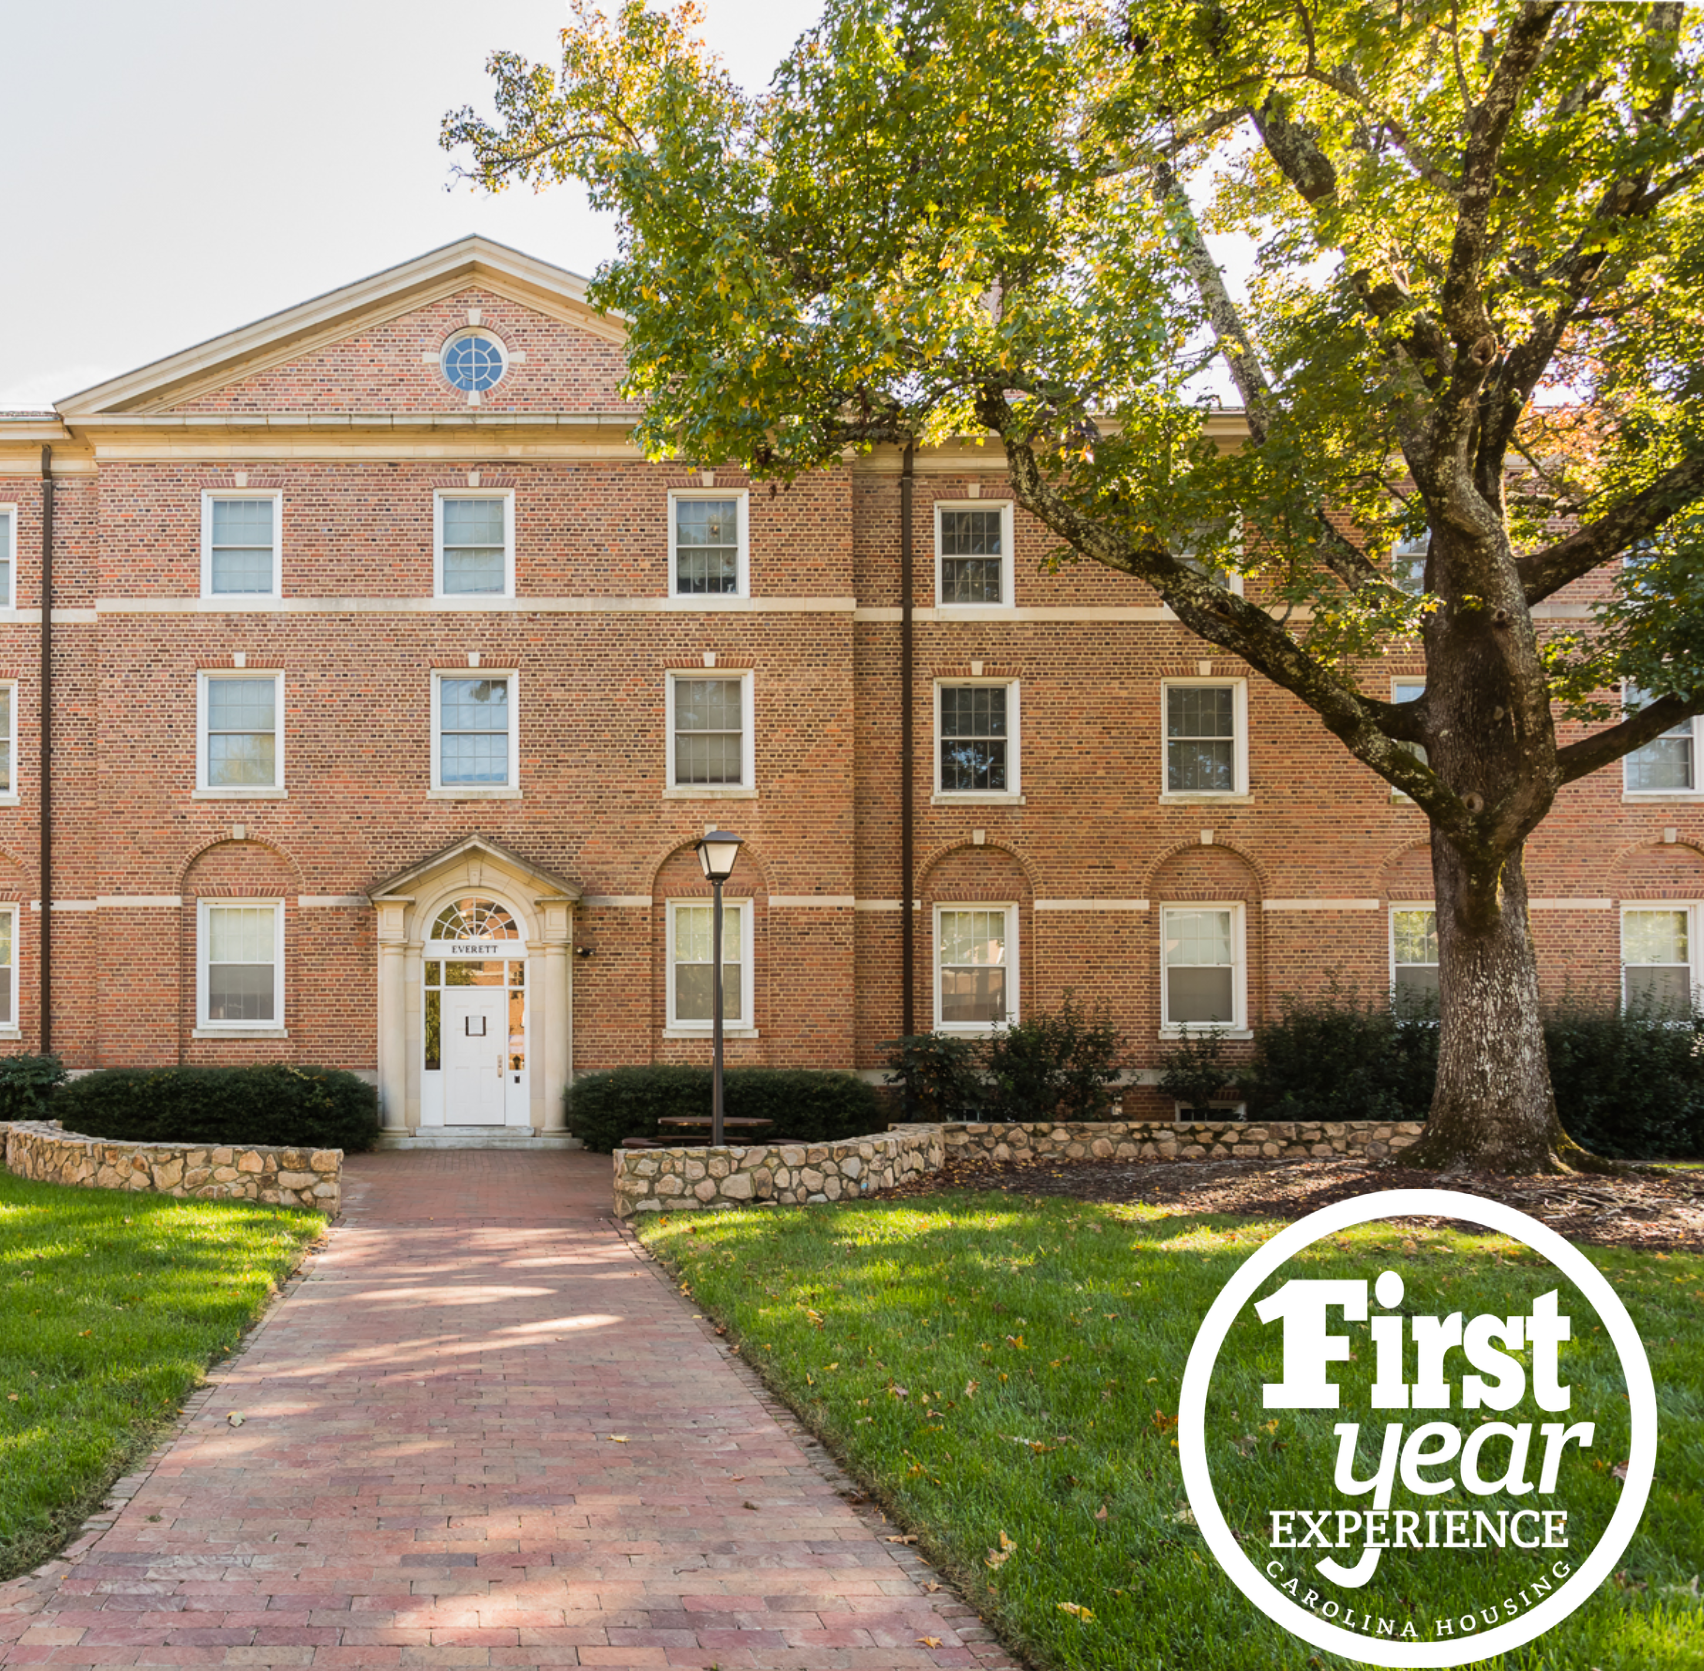 Everett residence hall with the First Year Experience logo in the right corner.